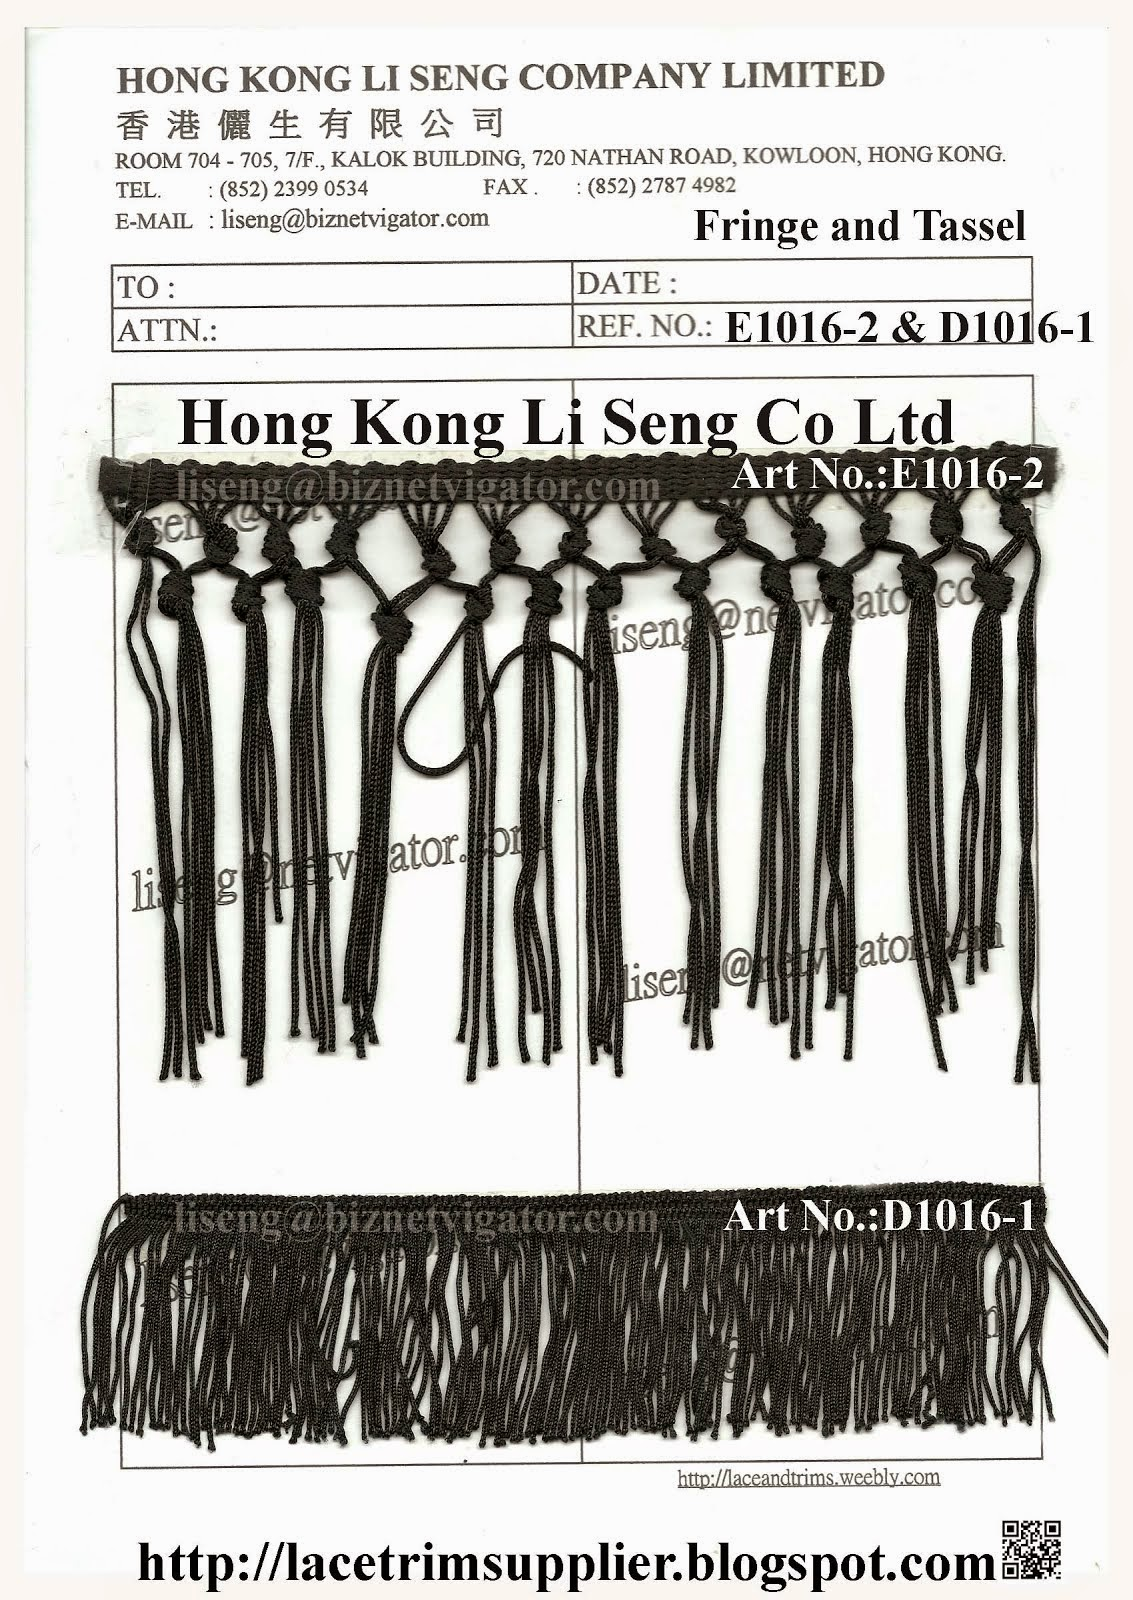 Fringe and Tassel for All Fashion Designer, Merchandiser, Sourcing Officer,